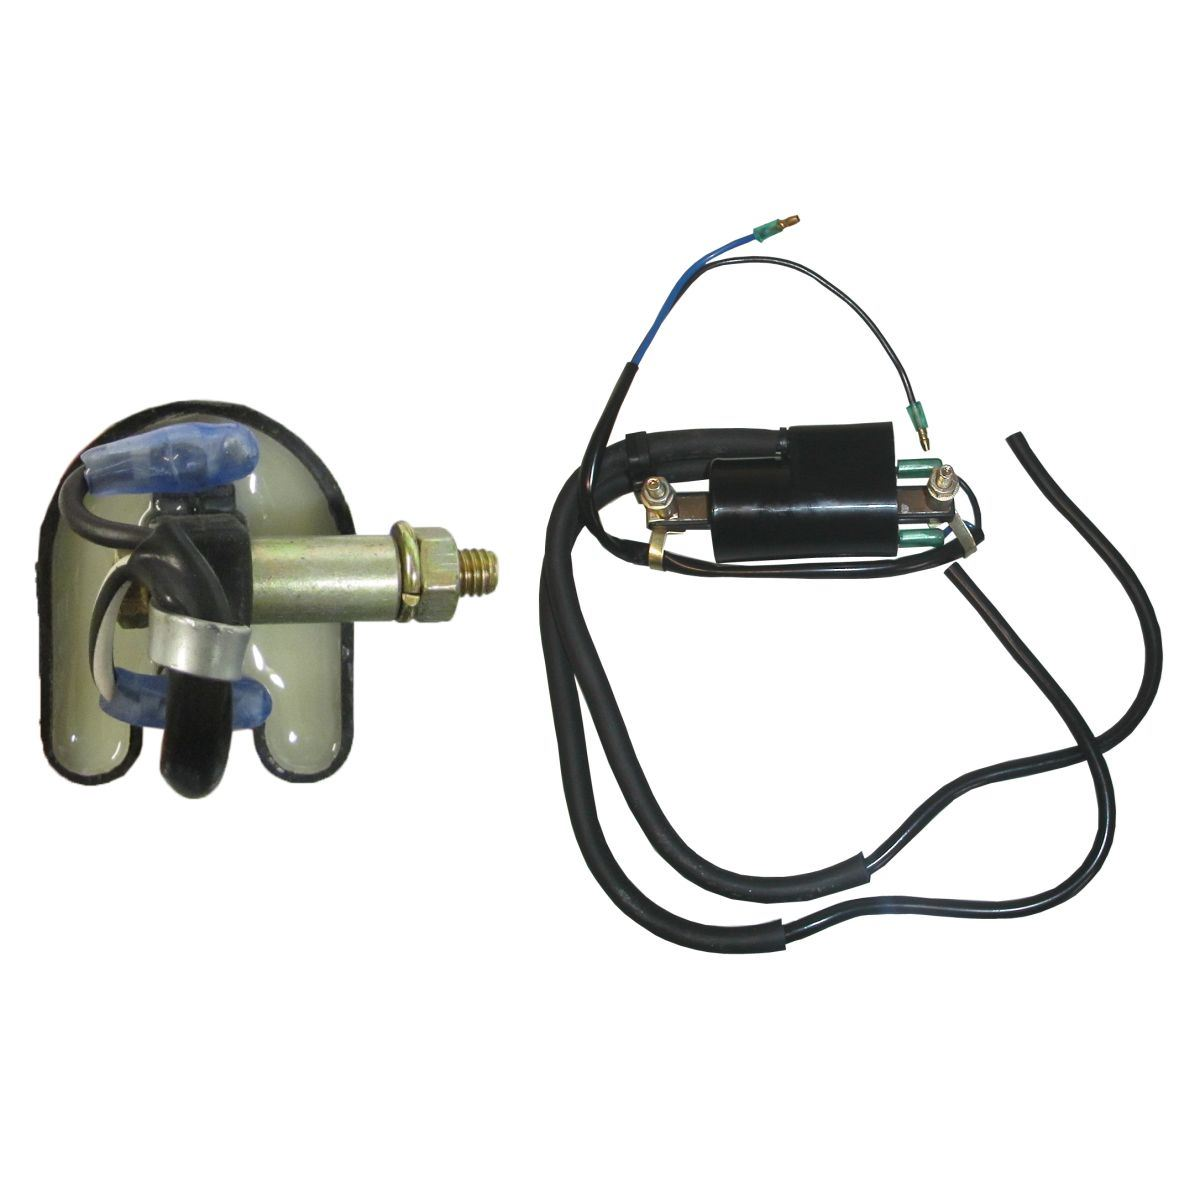 Aw Motorcycle Parts Ignition Coil 6v Points Twin Lead 2 Wires 100mm Honda 125 Wiring Picture Of